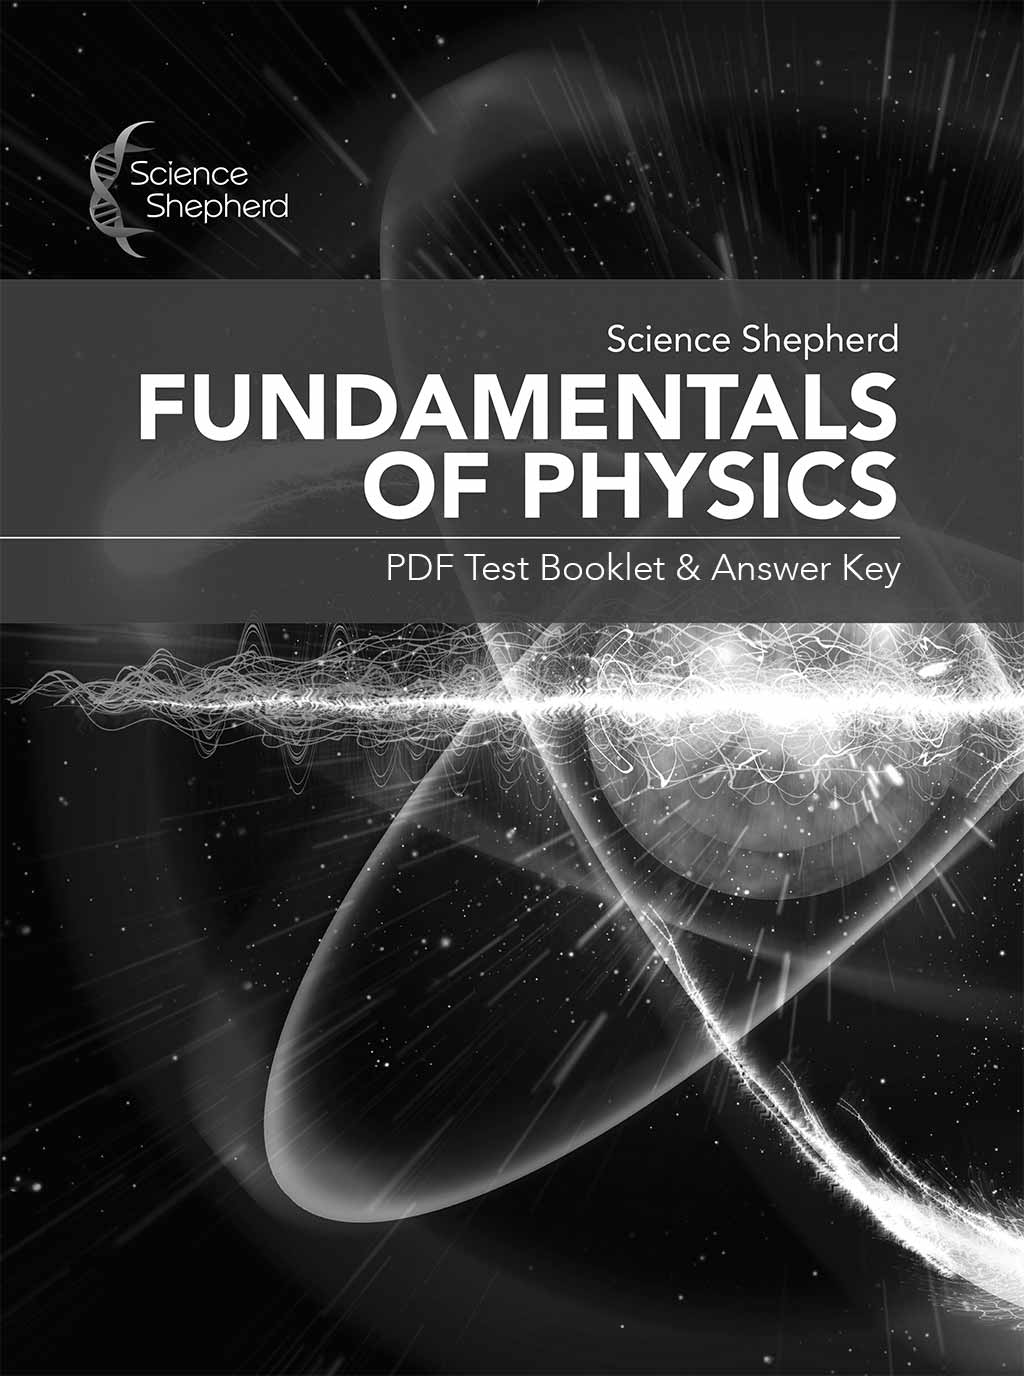 Science Shepherd Fundamentals of Physics for homeschoolers Test Booklet & Answer Key cover